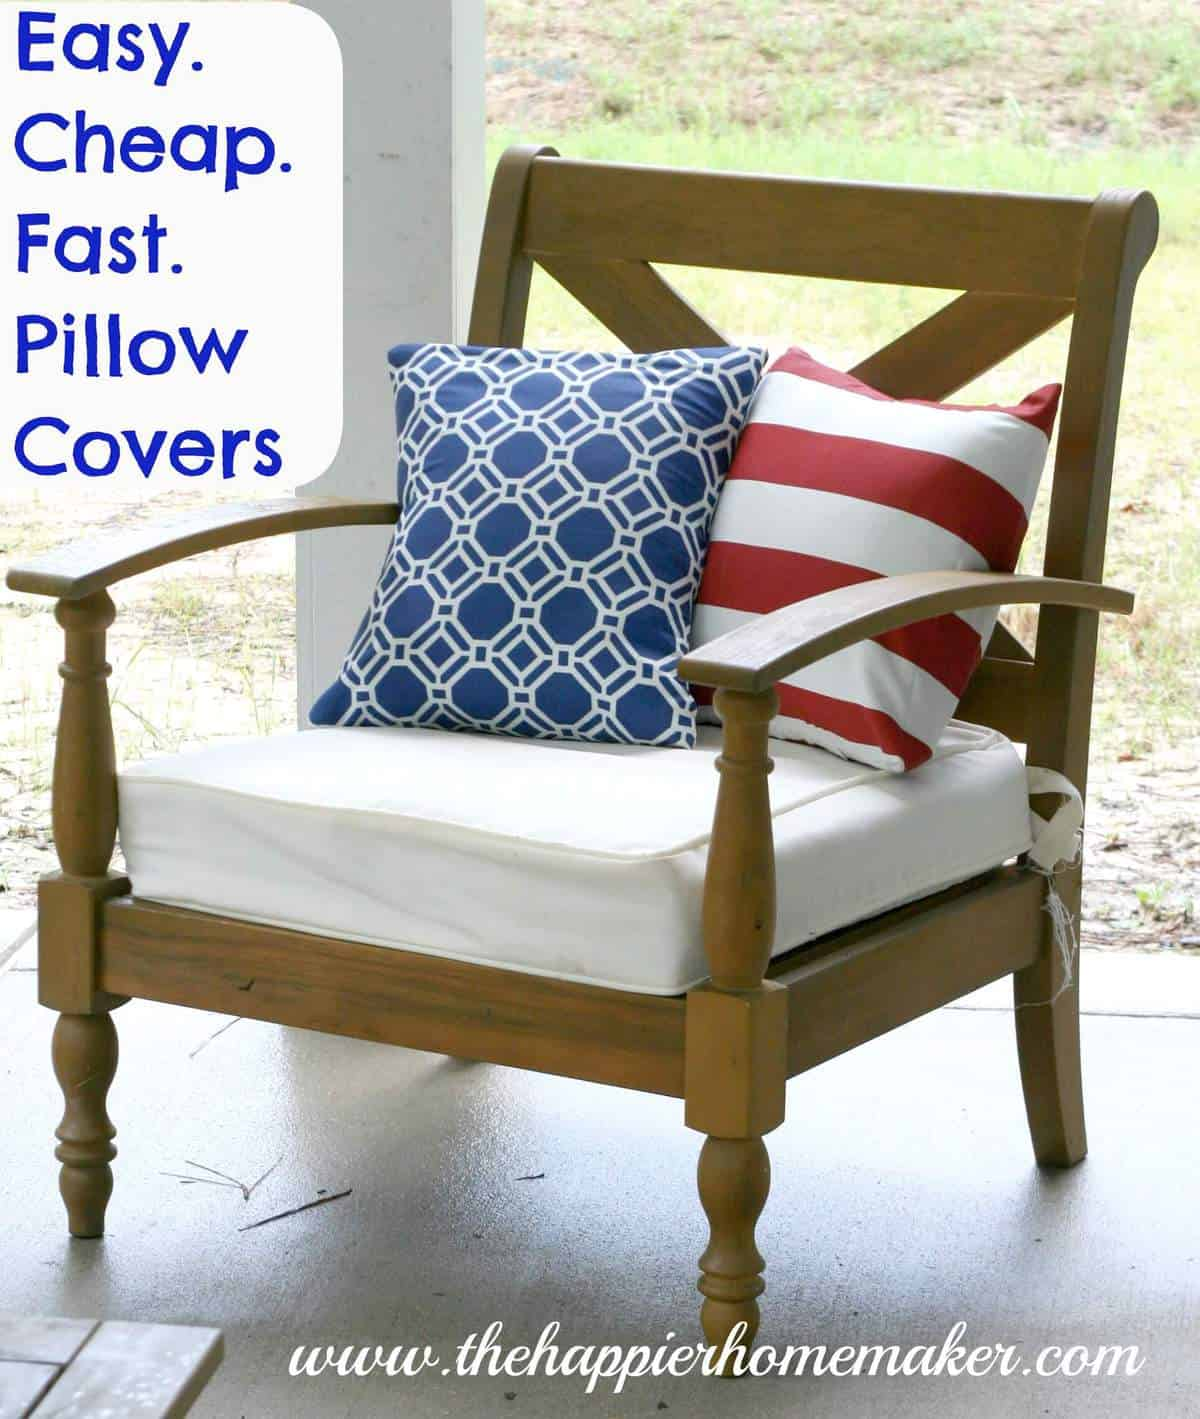 DIY pillow covers sitting on outside furniture